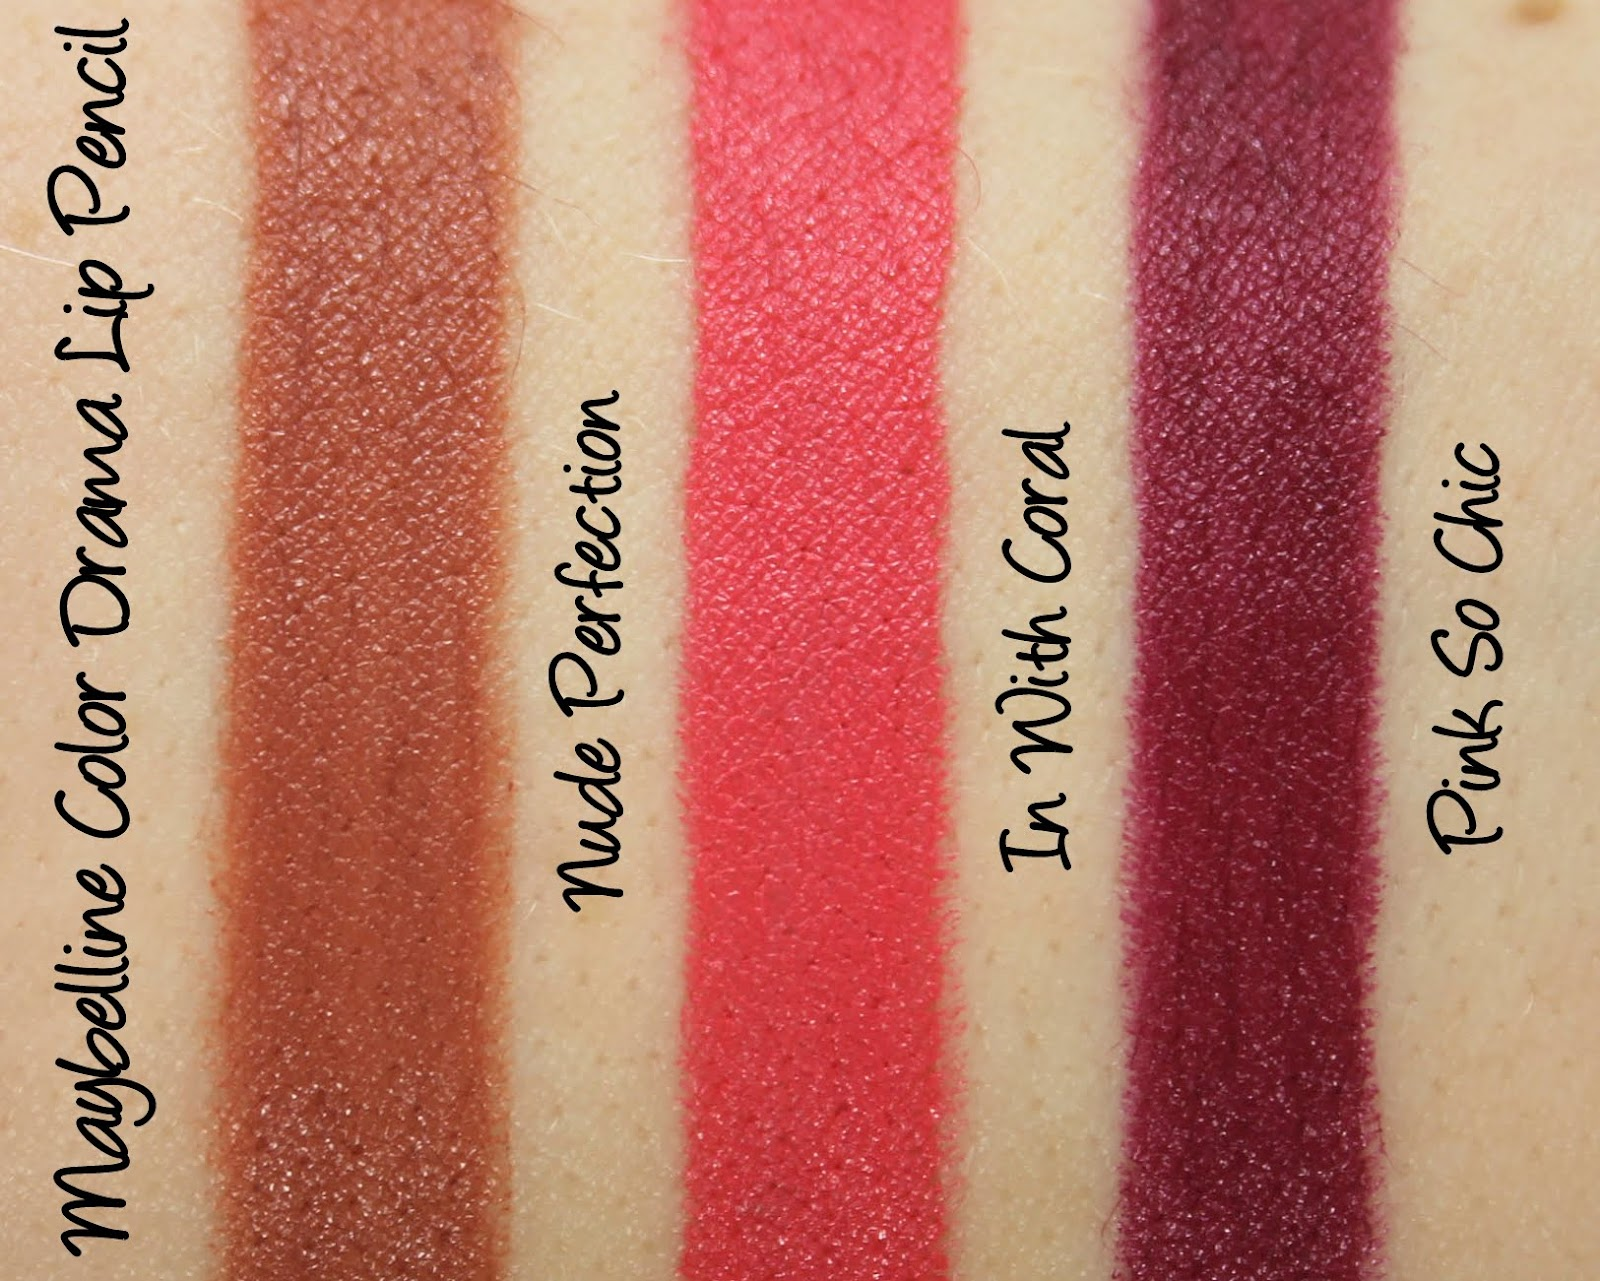 Maybelline Color Drama Lip Pencil - Nude Perfection, In With Coral and Pink  So Chic